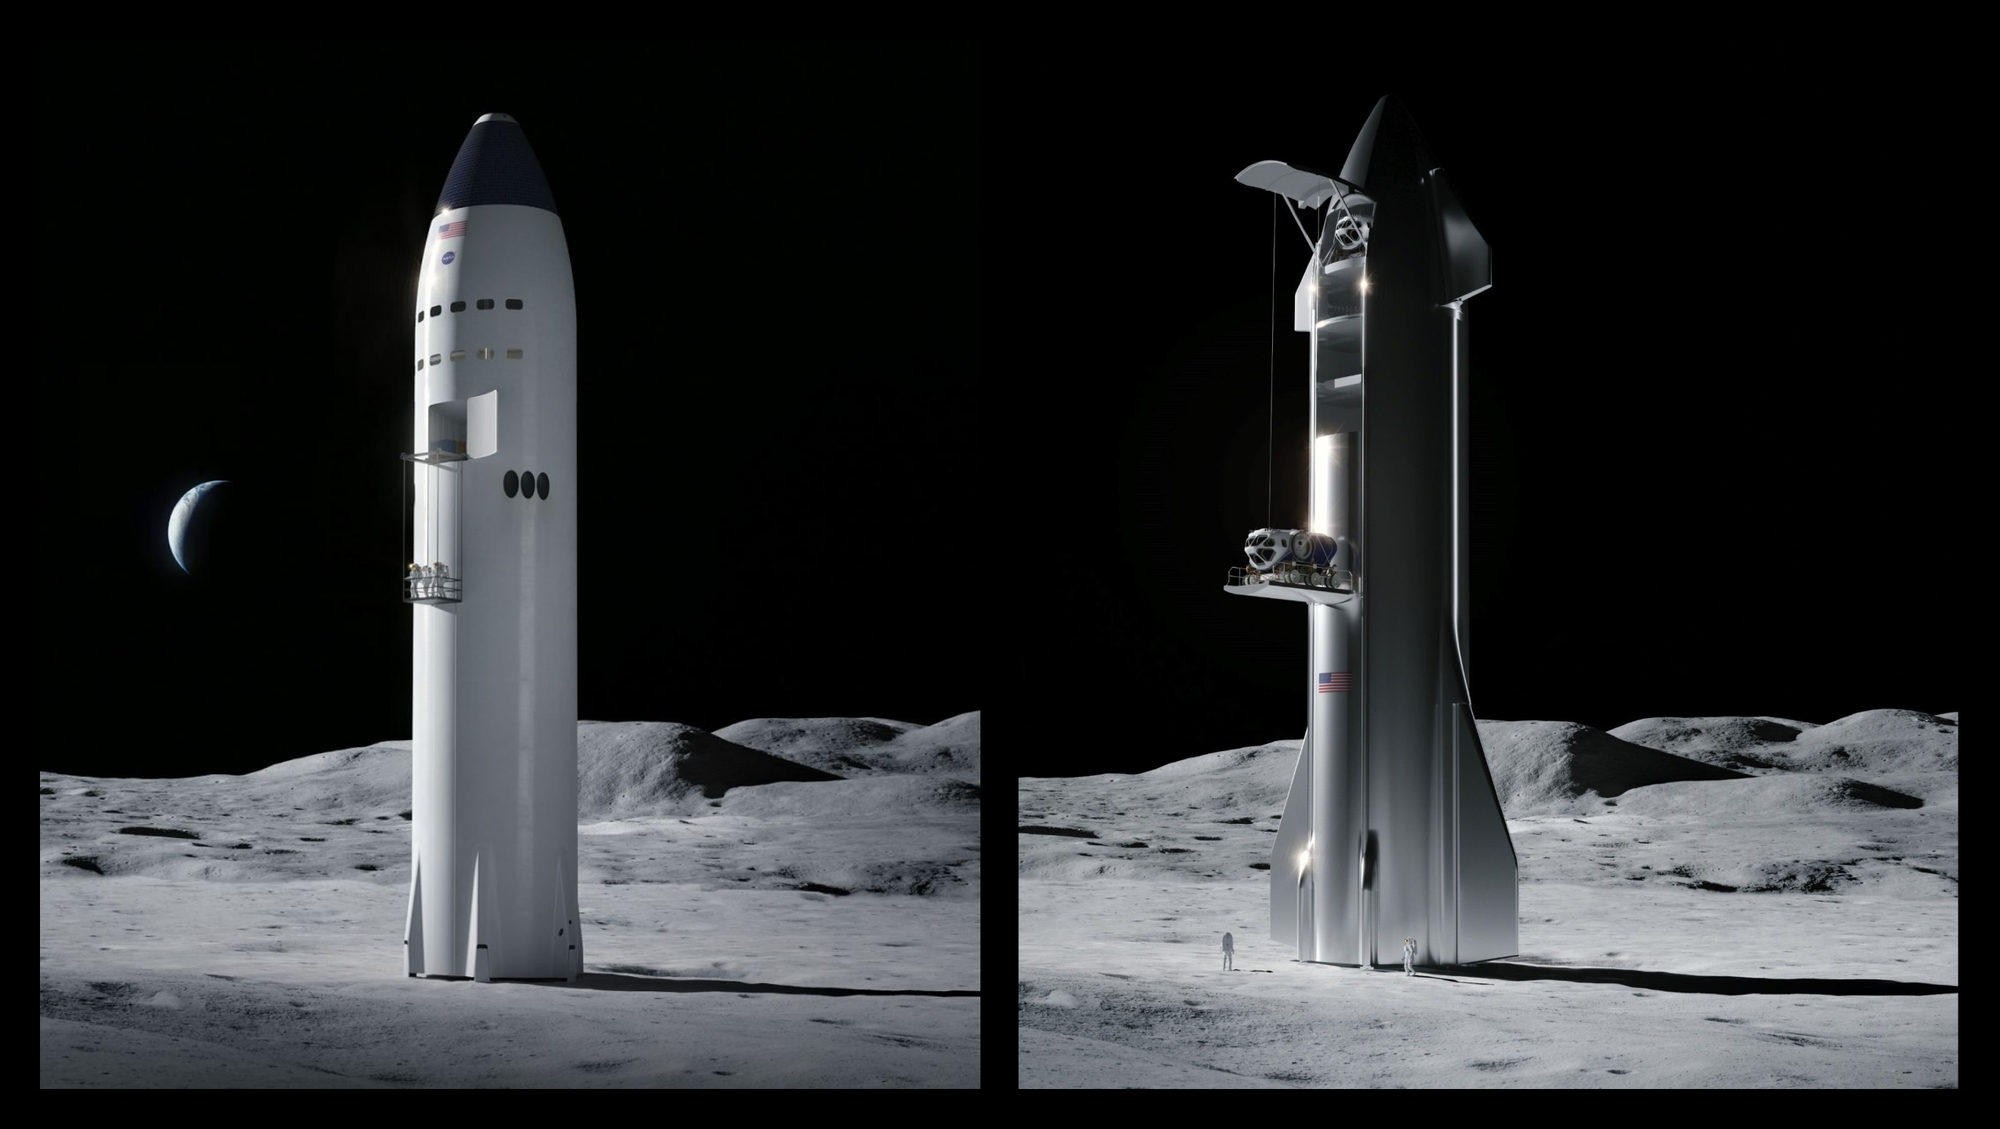 SpaceX will modify Starship's design for NASA Lunar Missions